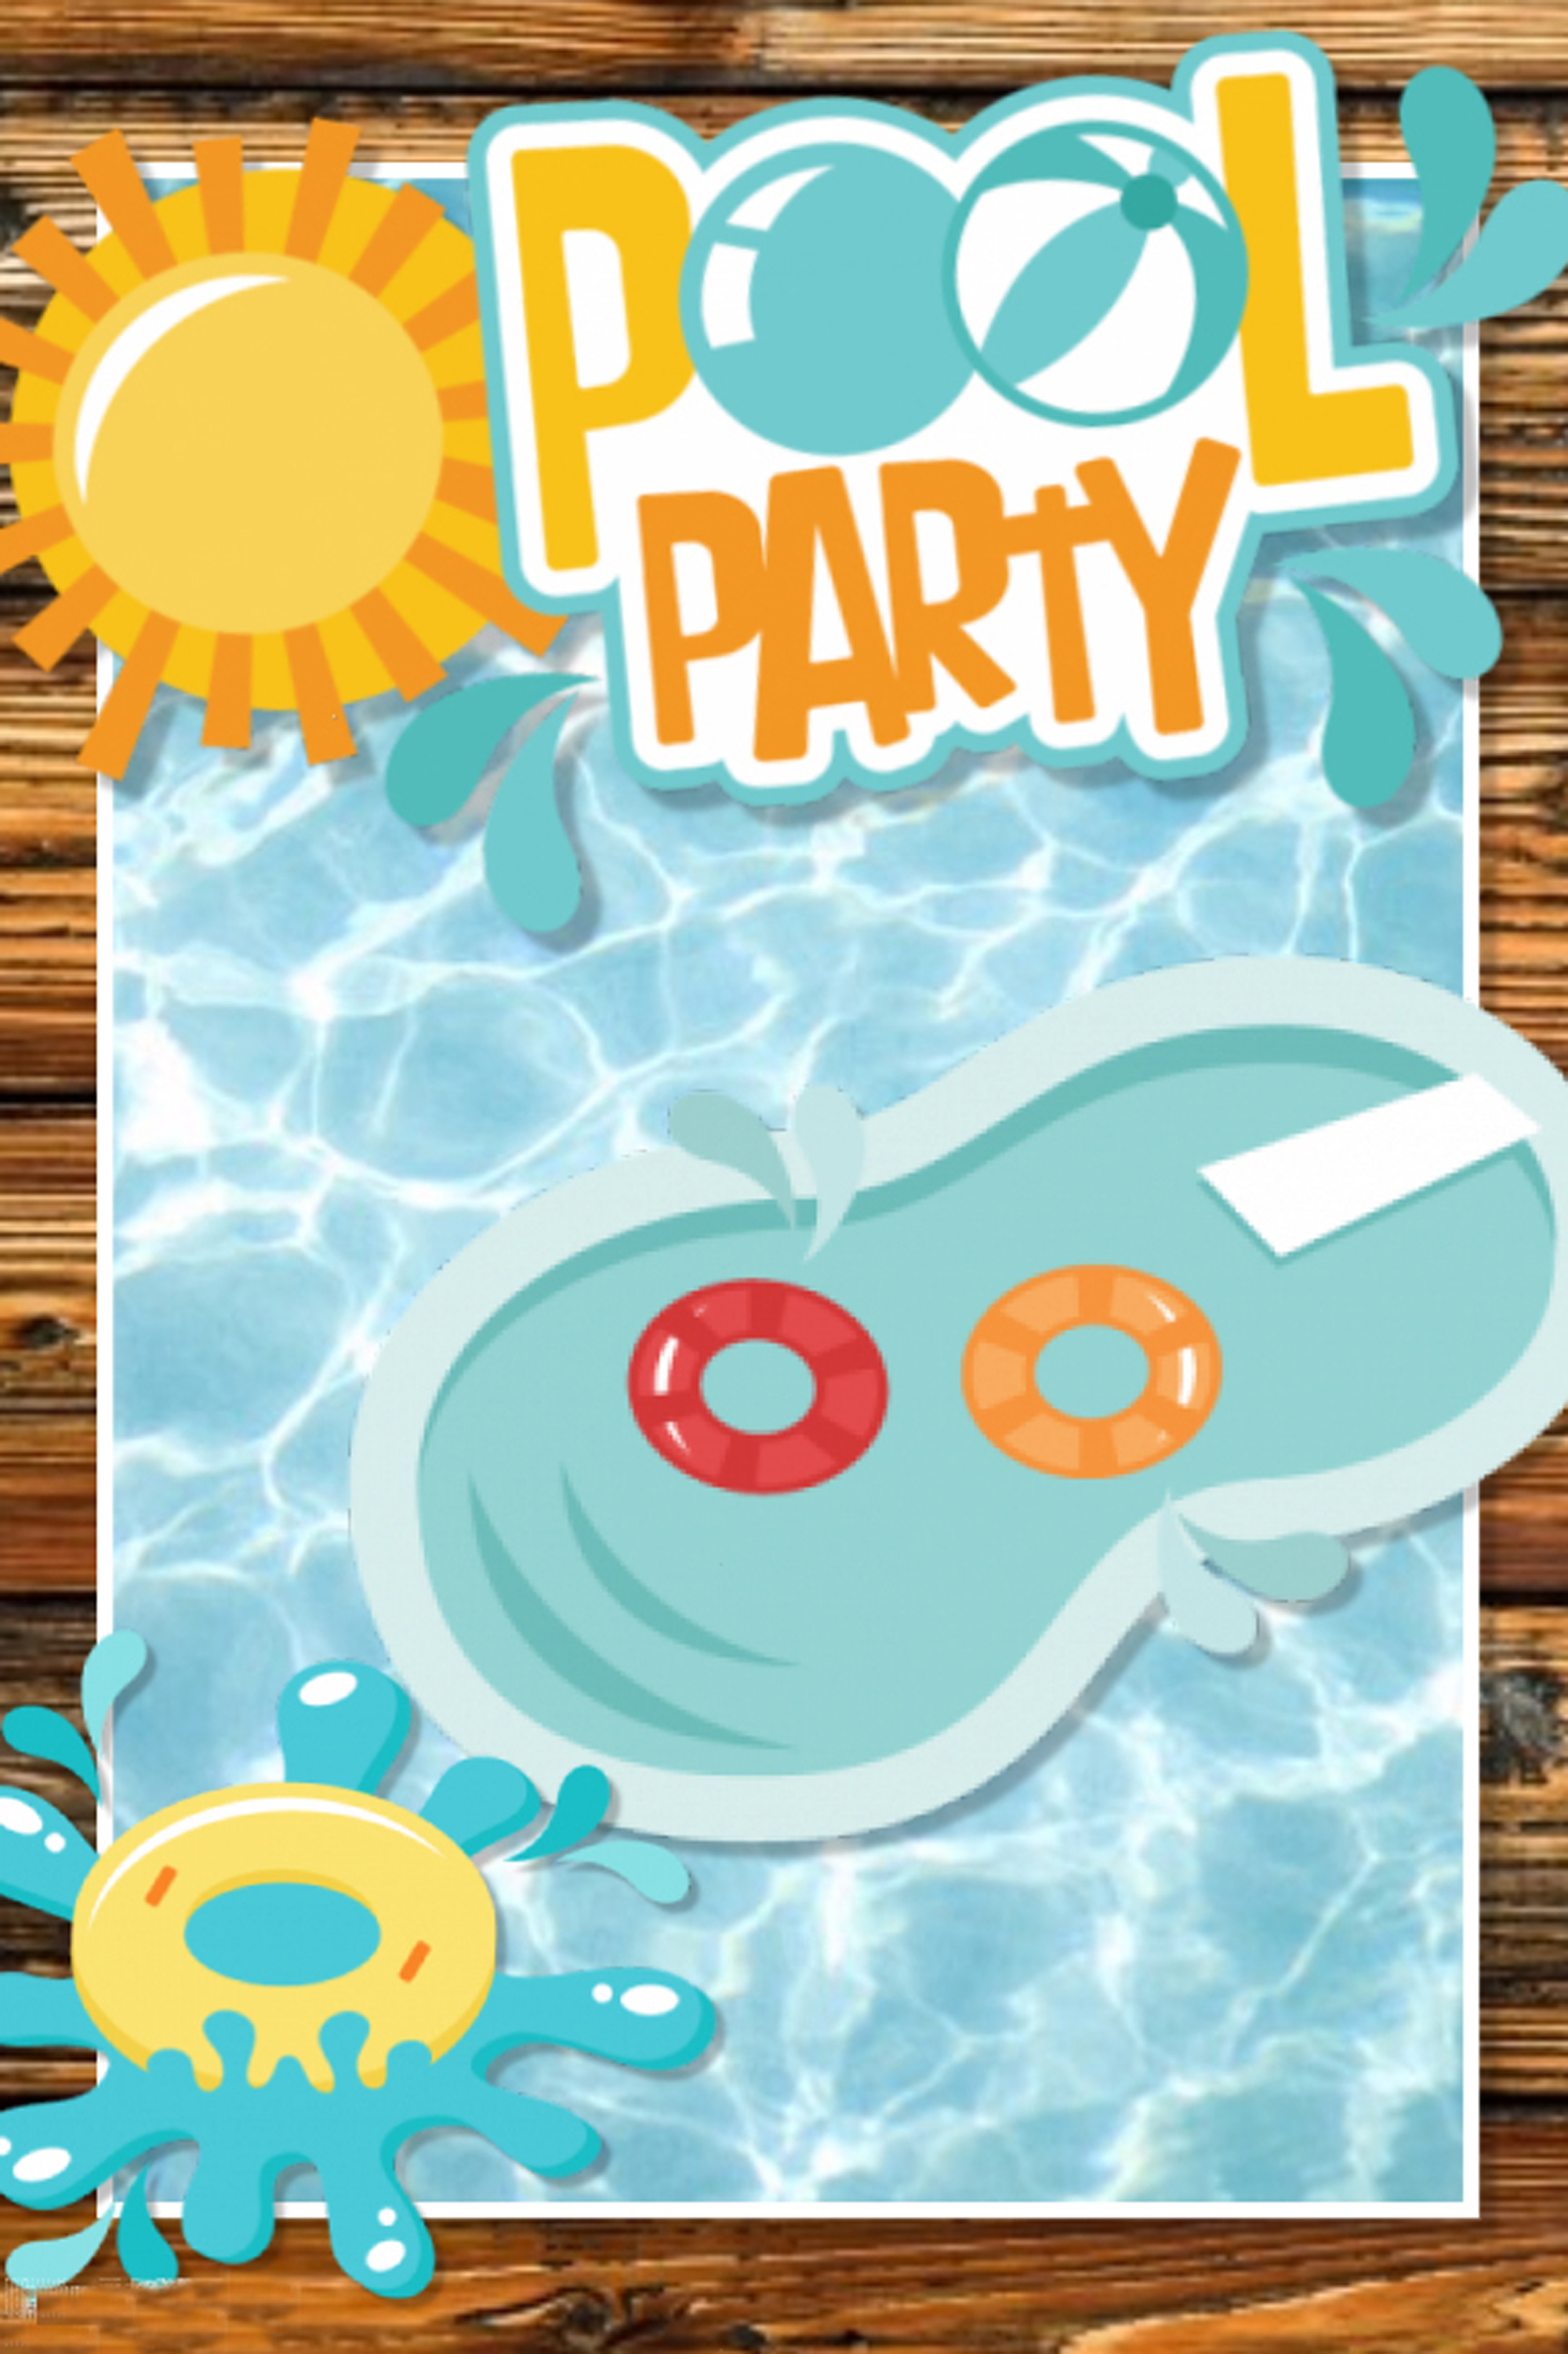 pool party poster background  swimming  pool  party